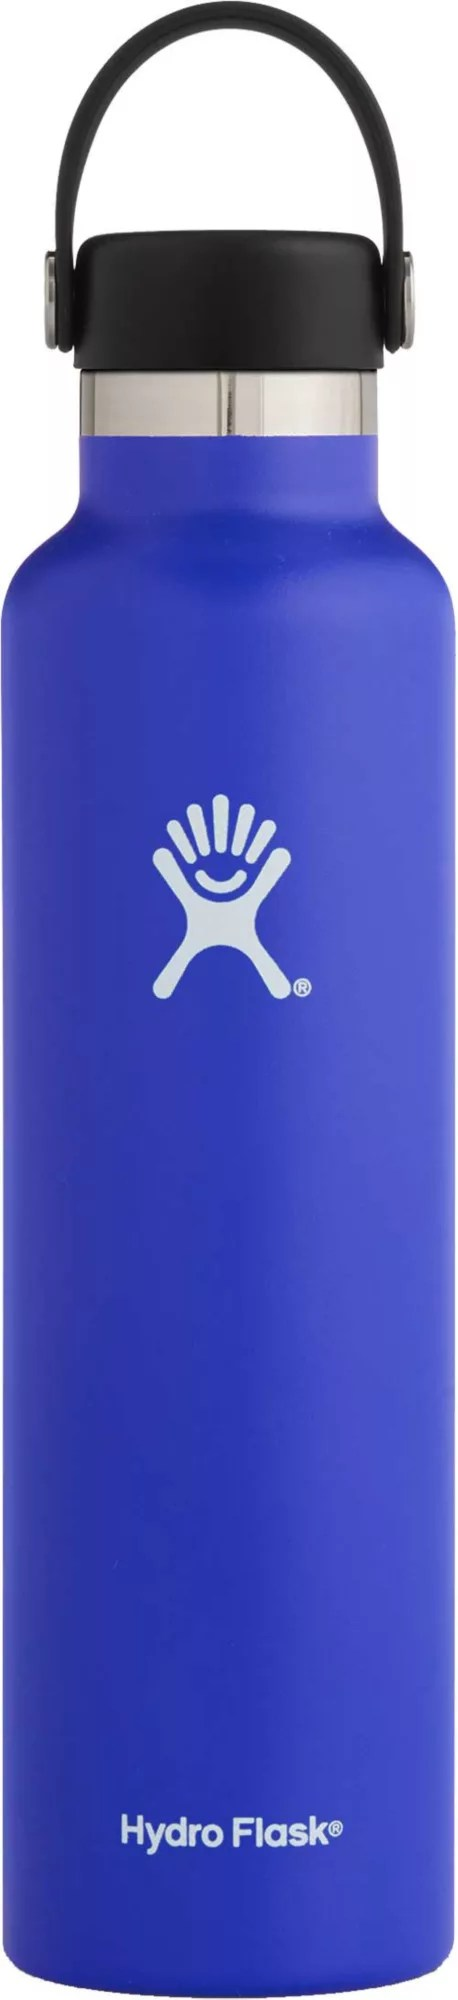 hydro flask standard mouth